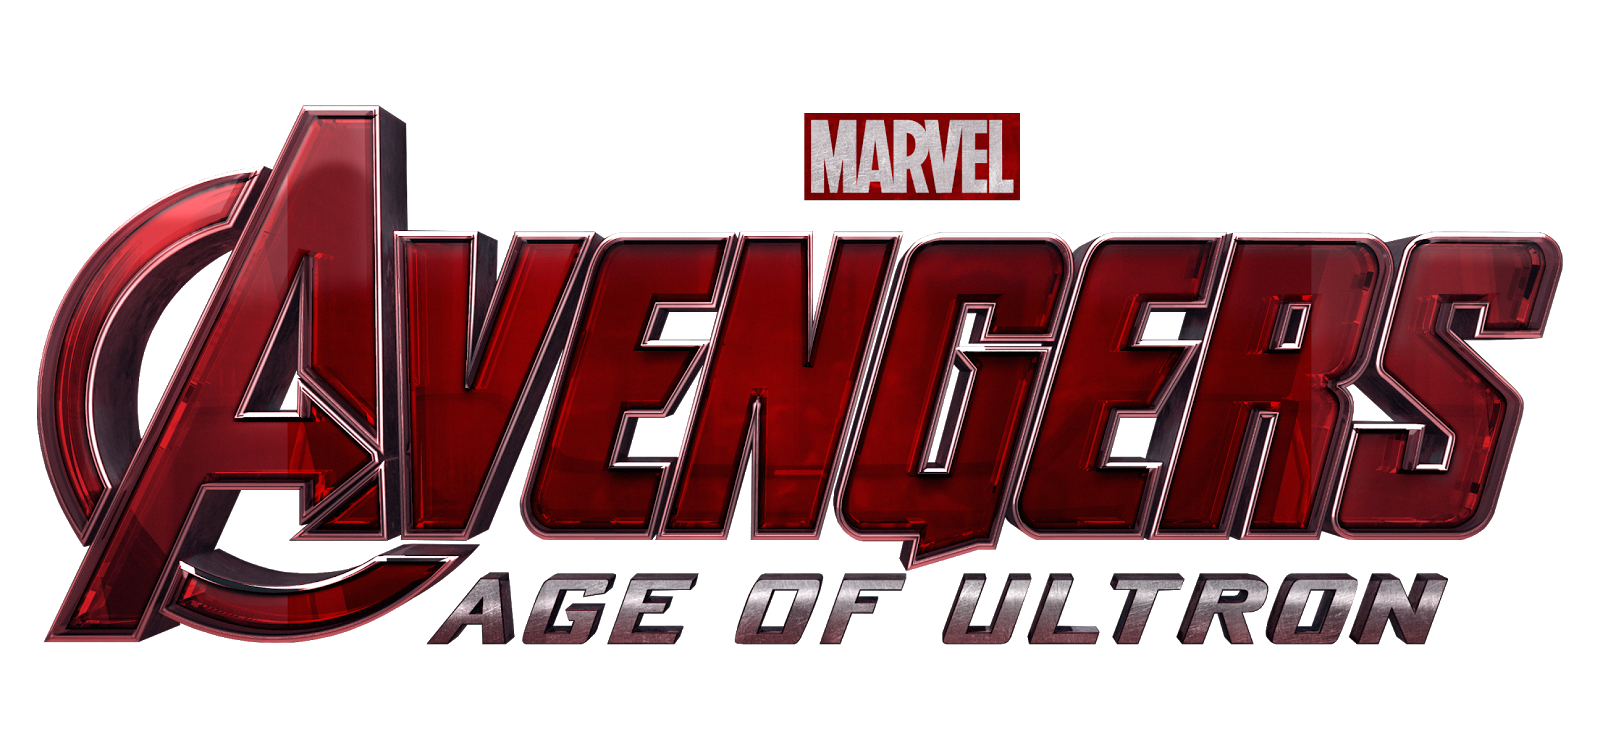 Avengers Age of Ultron Logo p